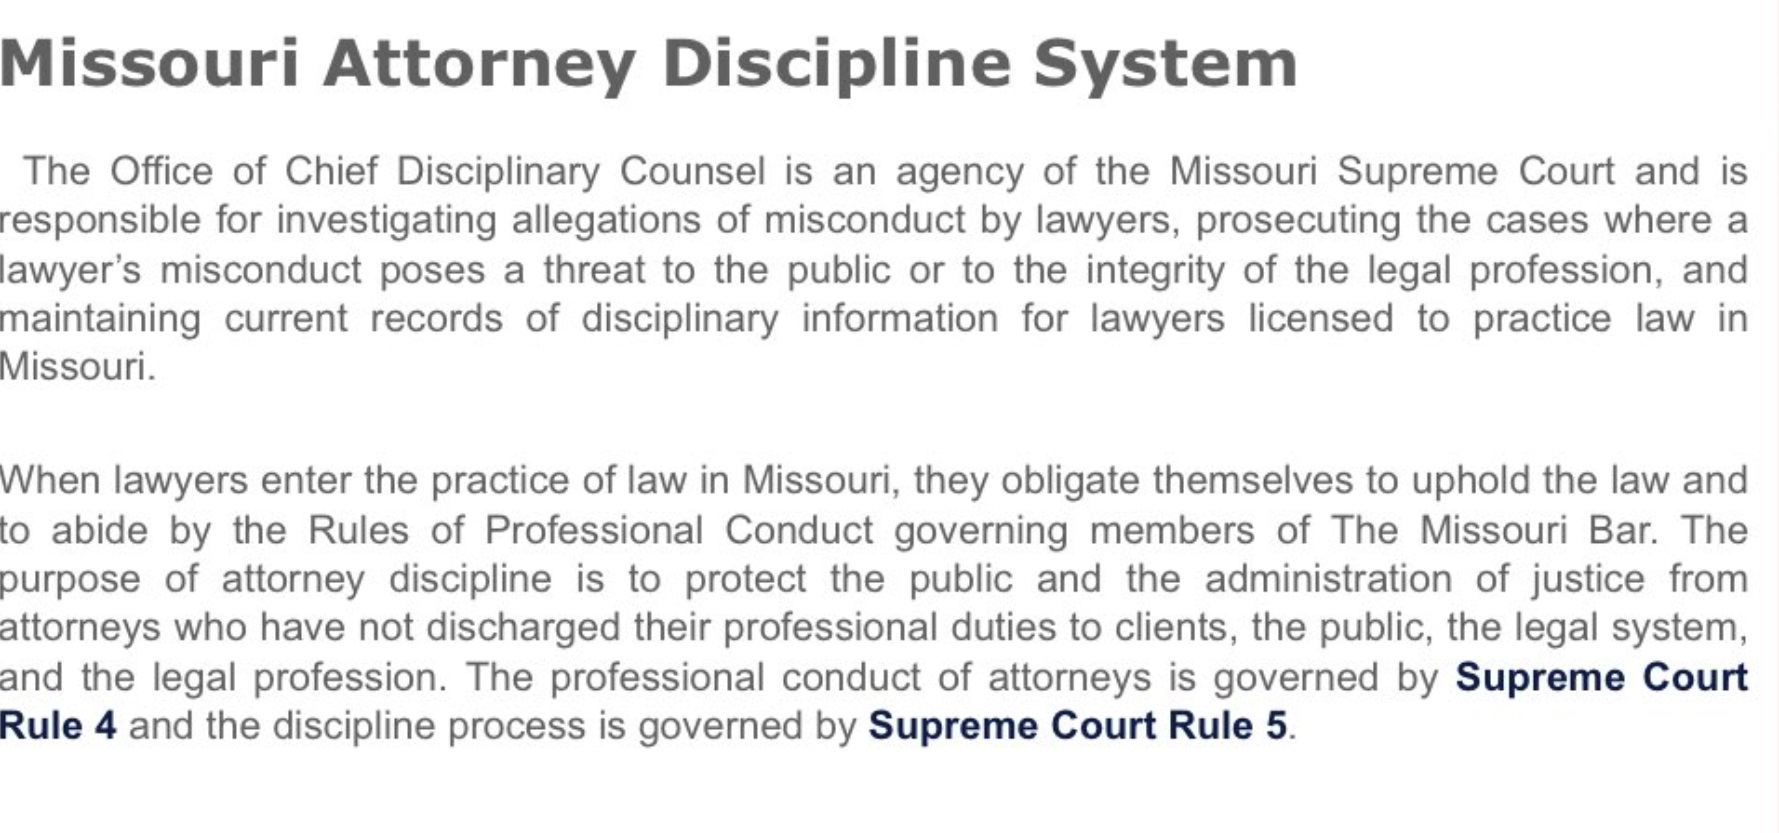 PHOTO How Patricia Mccloskey Could Be Disciplined By The Missour Attorney System